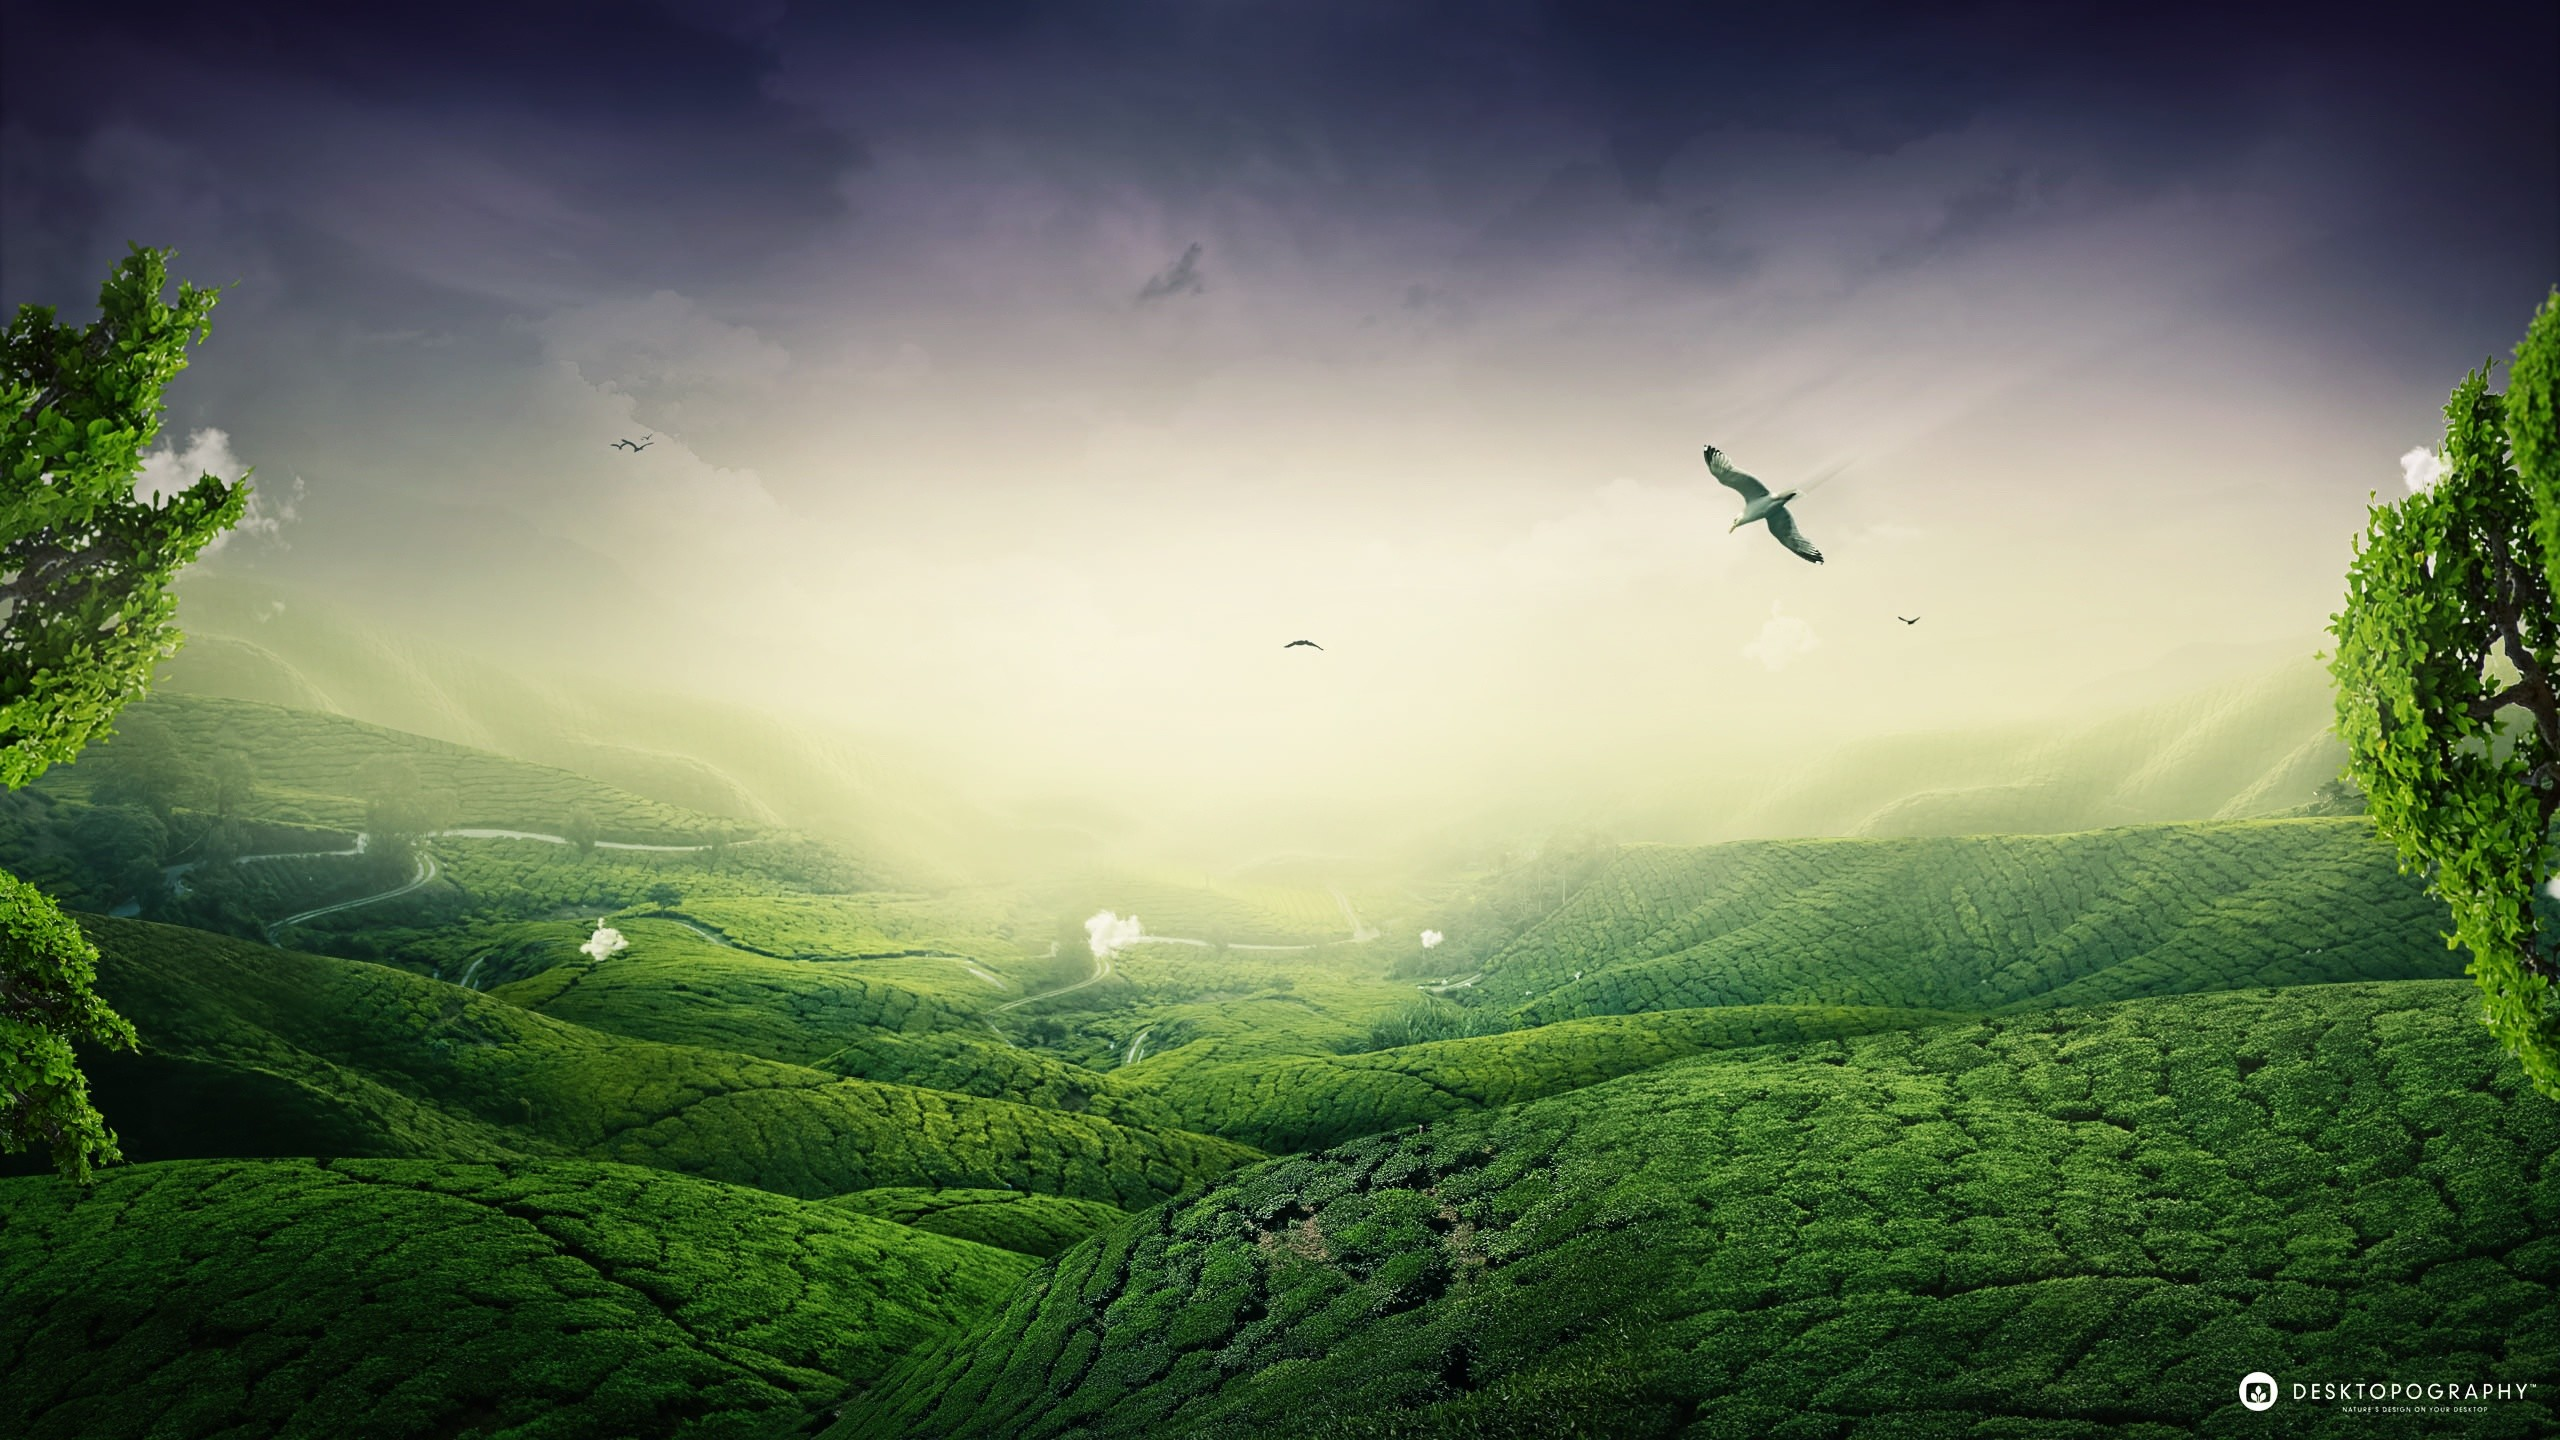 2560x1440 Hd Landscape Wallpapers Collection For Free Download · Download · hdwallpapers.in